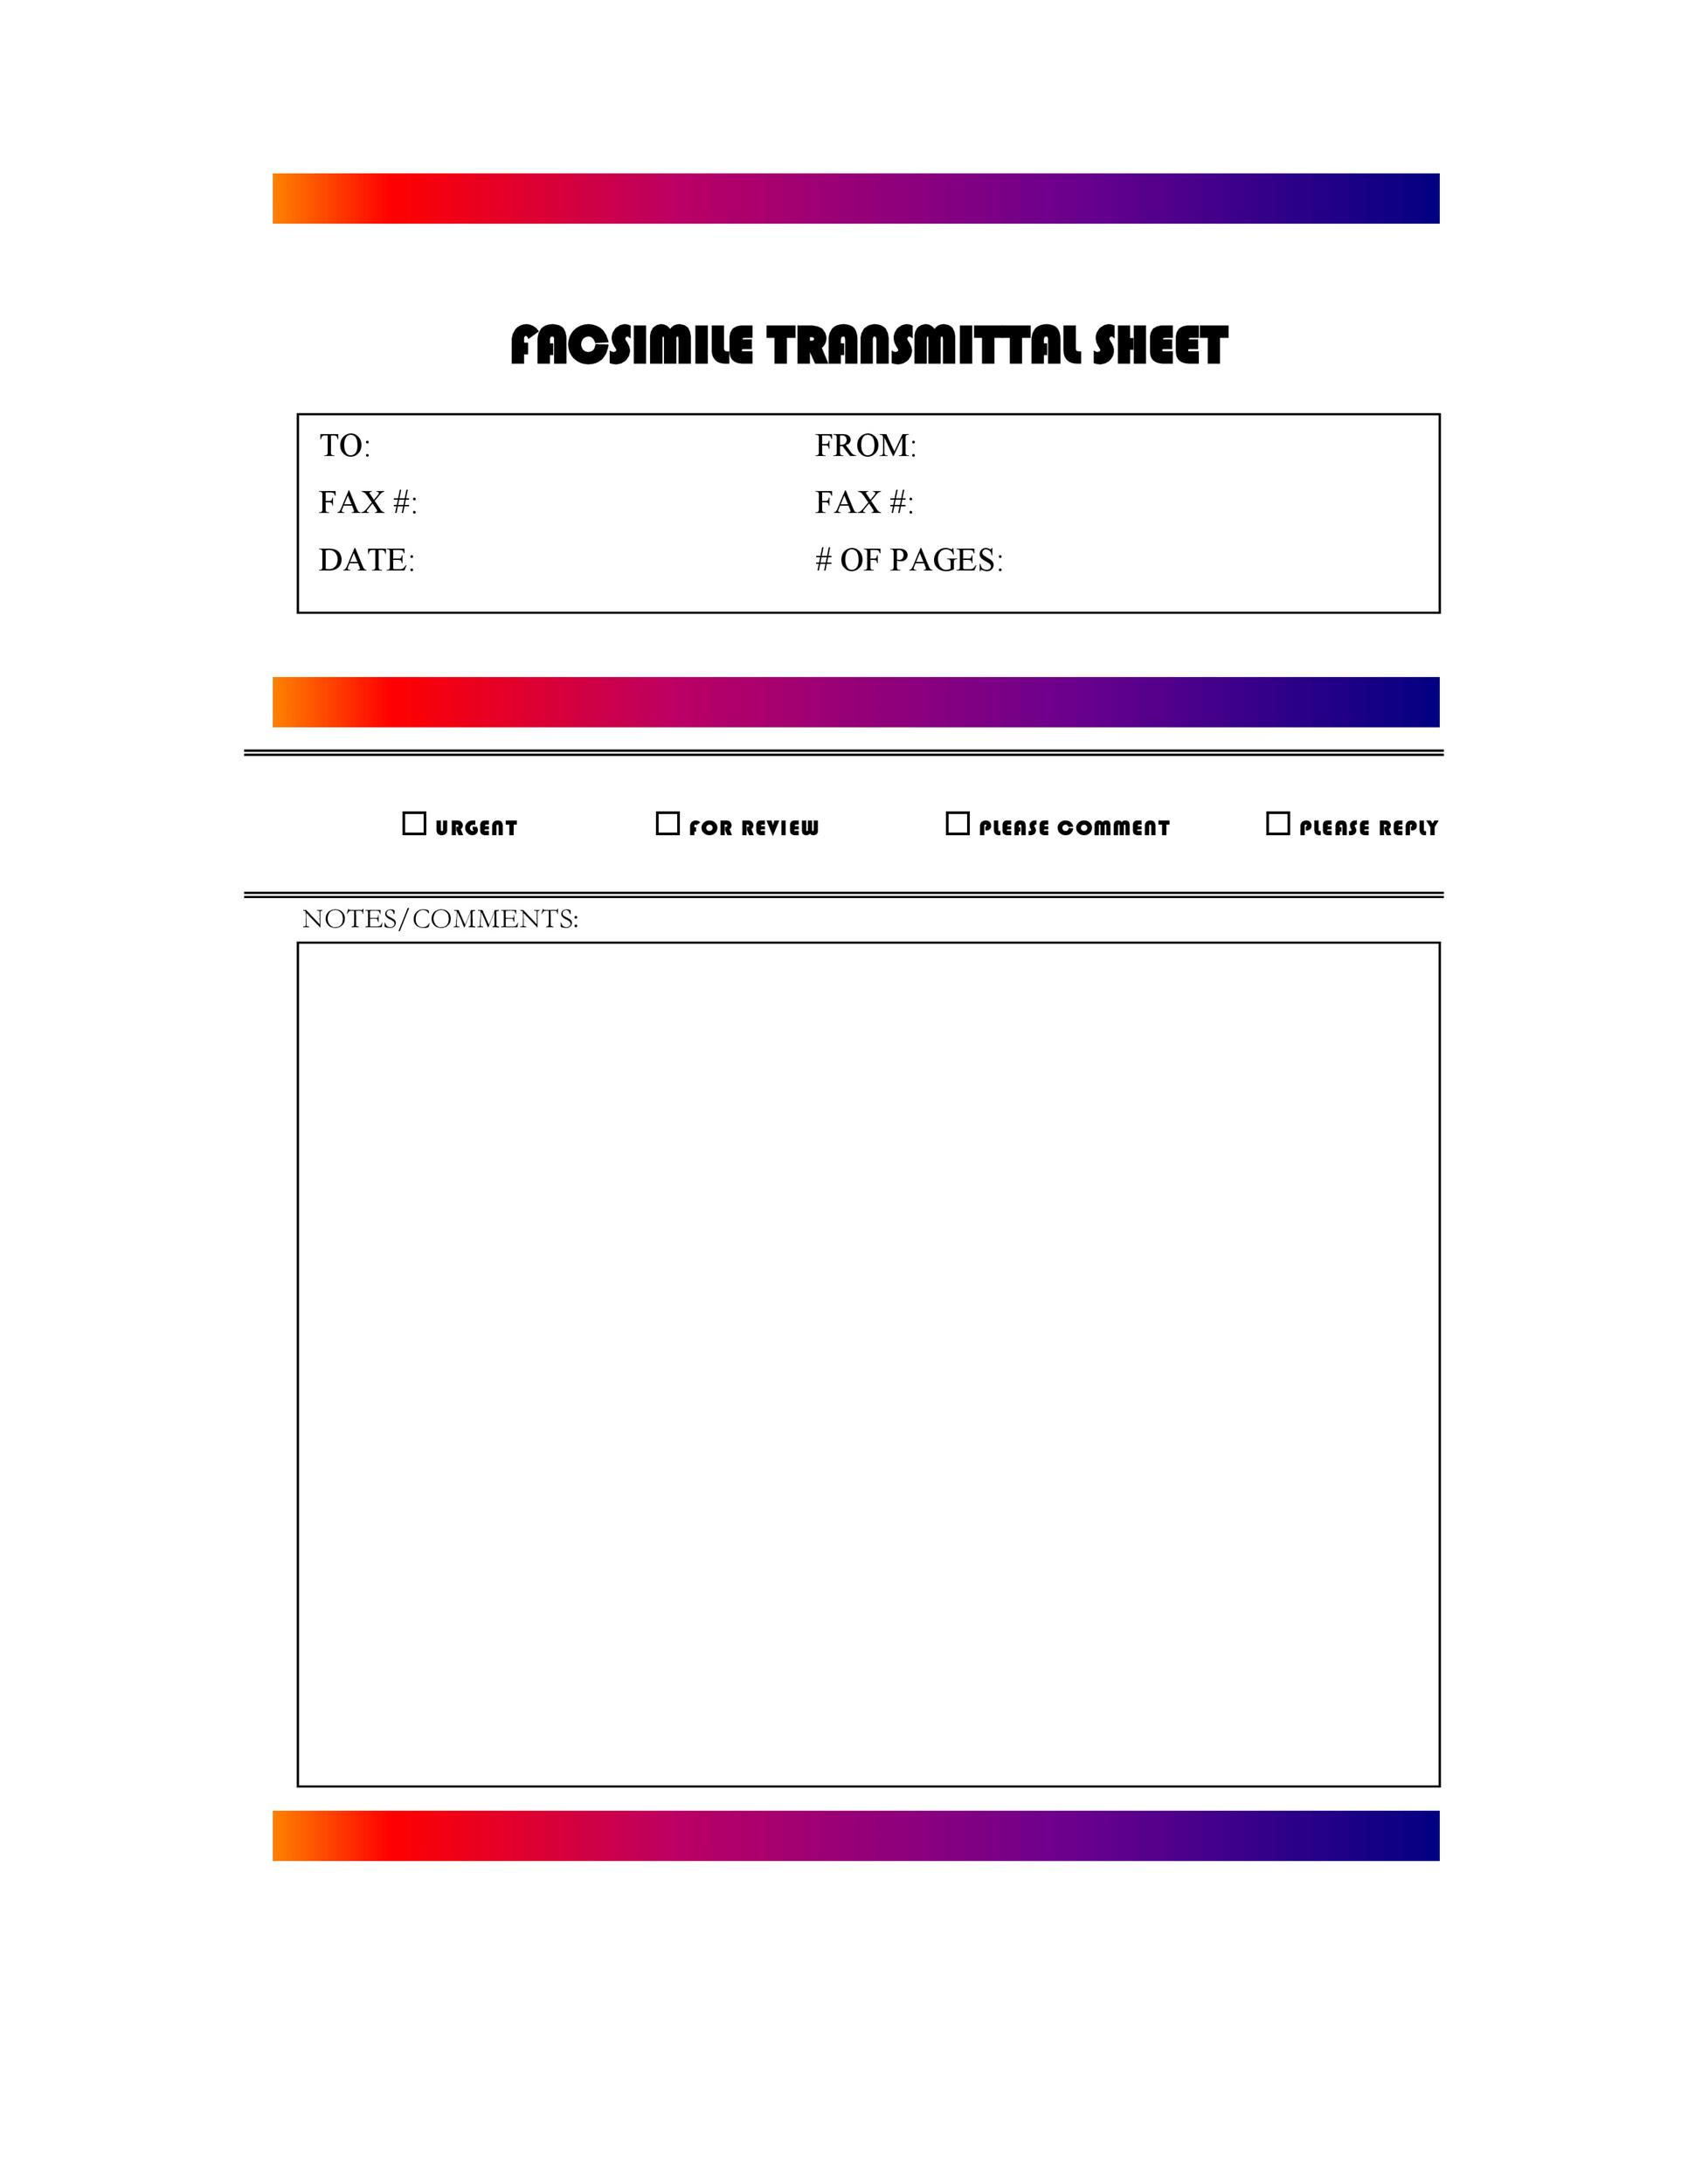 Fax Cover Sheet Template 39